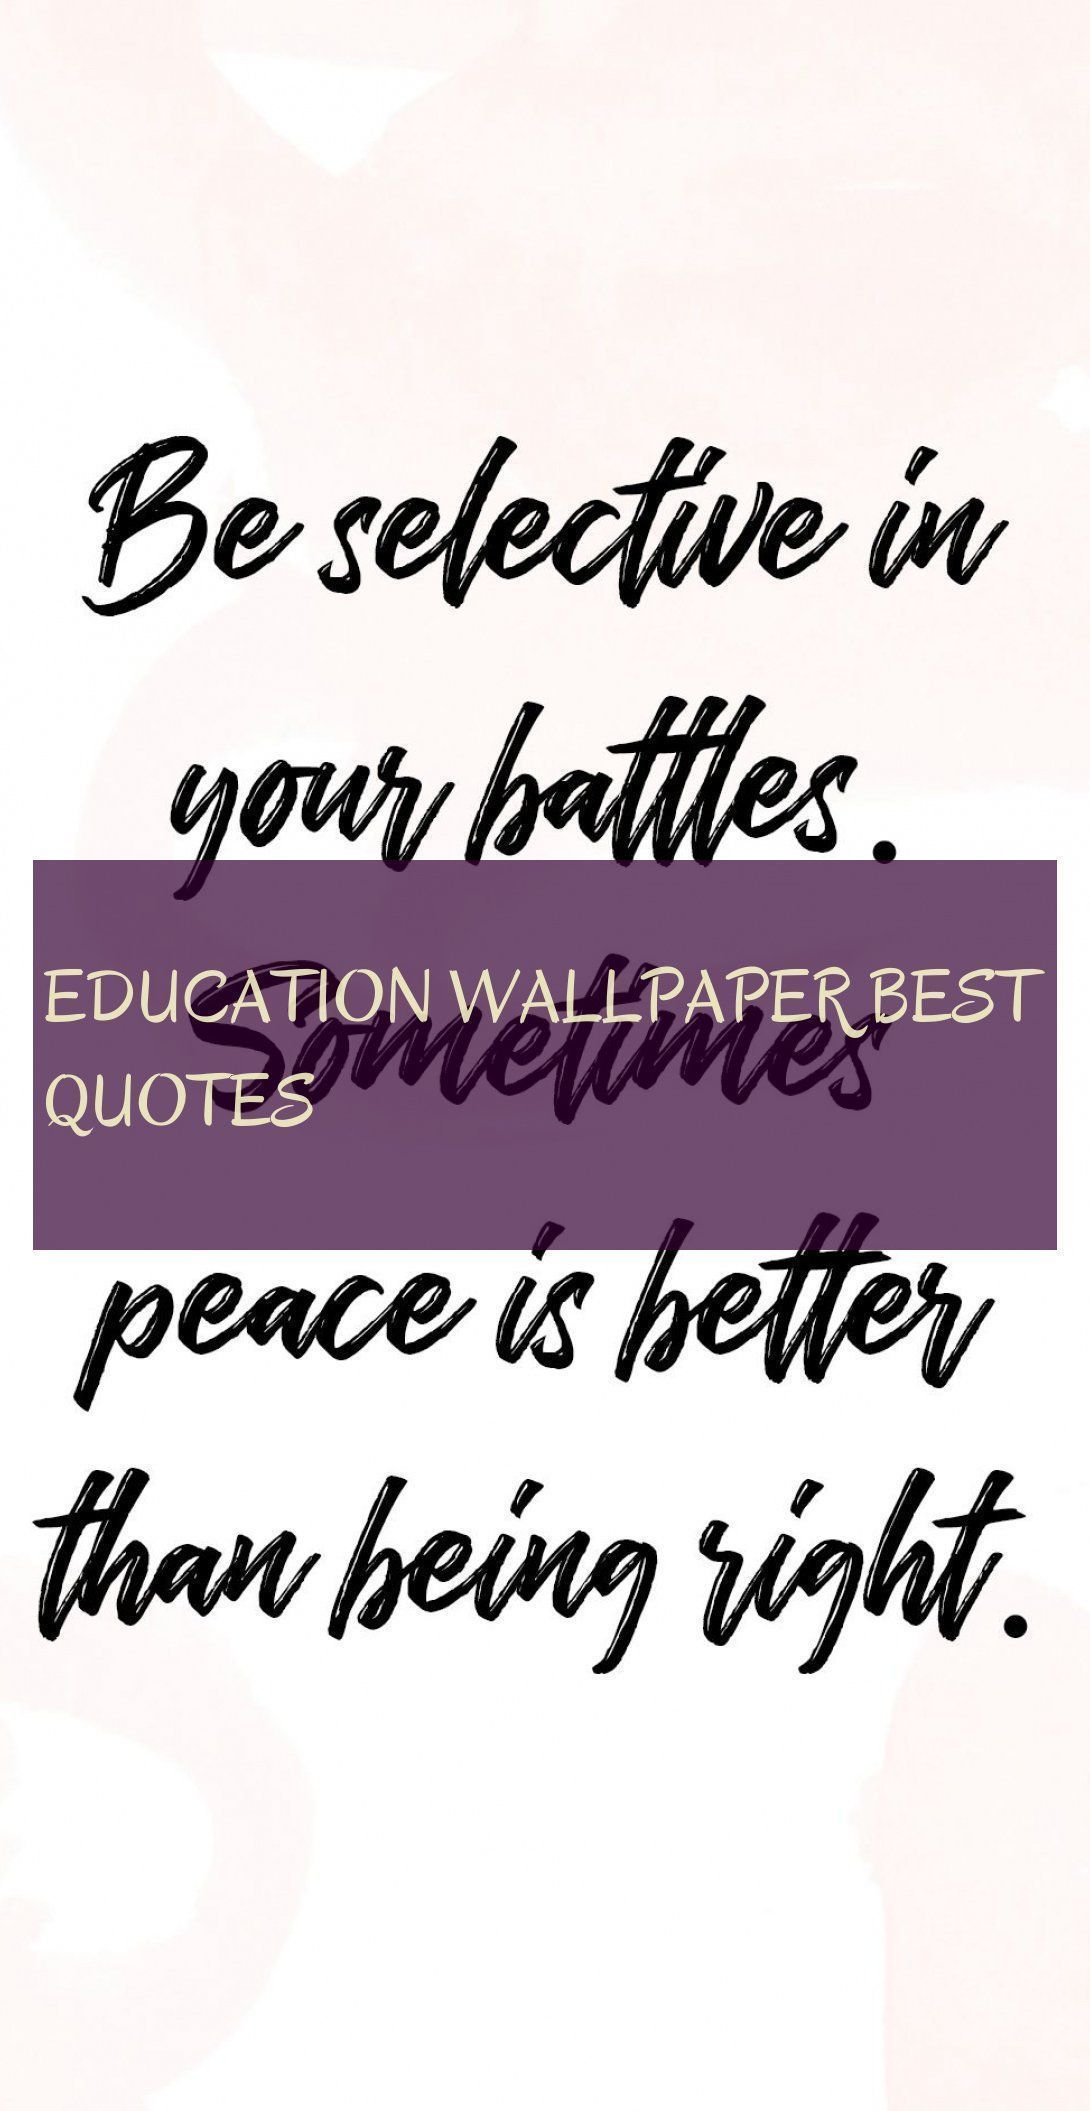 Education Wallpaper Best Quotes Quotes Education Quote Education Quote Best Quotes Education Quotes Education